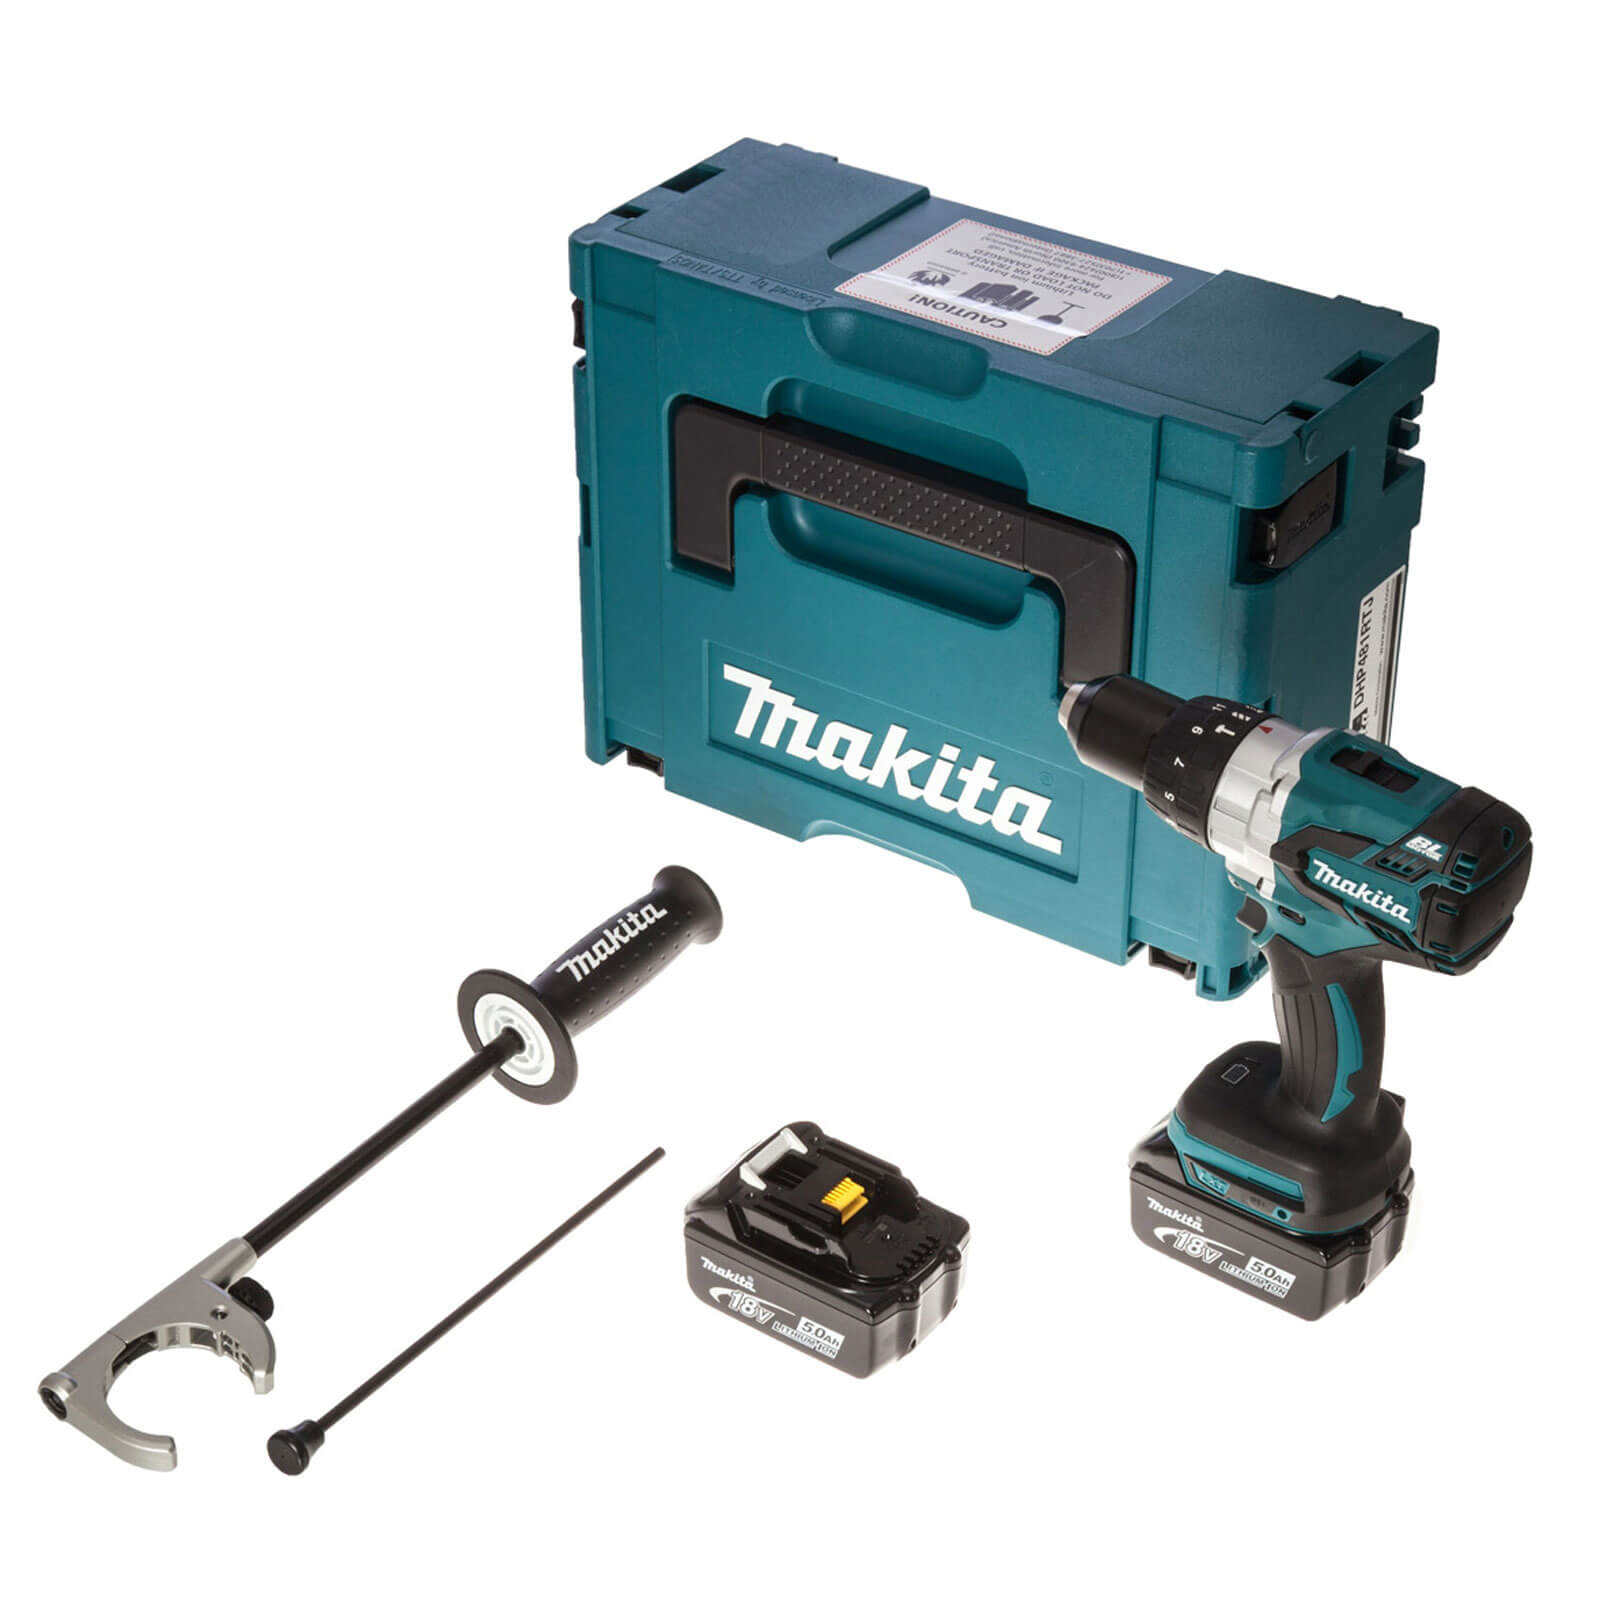 Image of Makita DHP481RTJ 18v Cordless XPT Brushless Combi Drill with 2 Lithium Ion Batteries 5ah